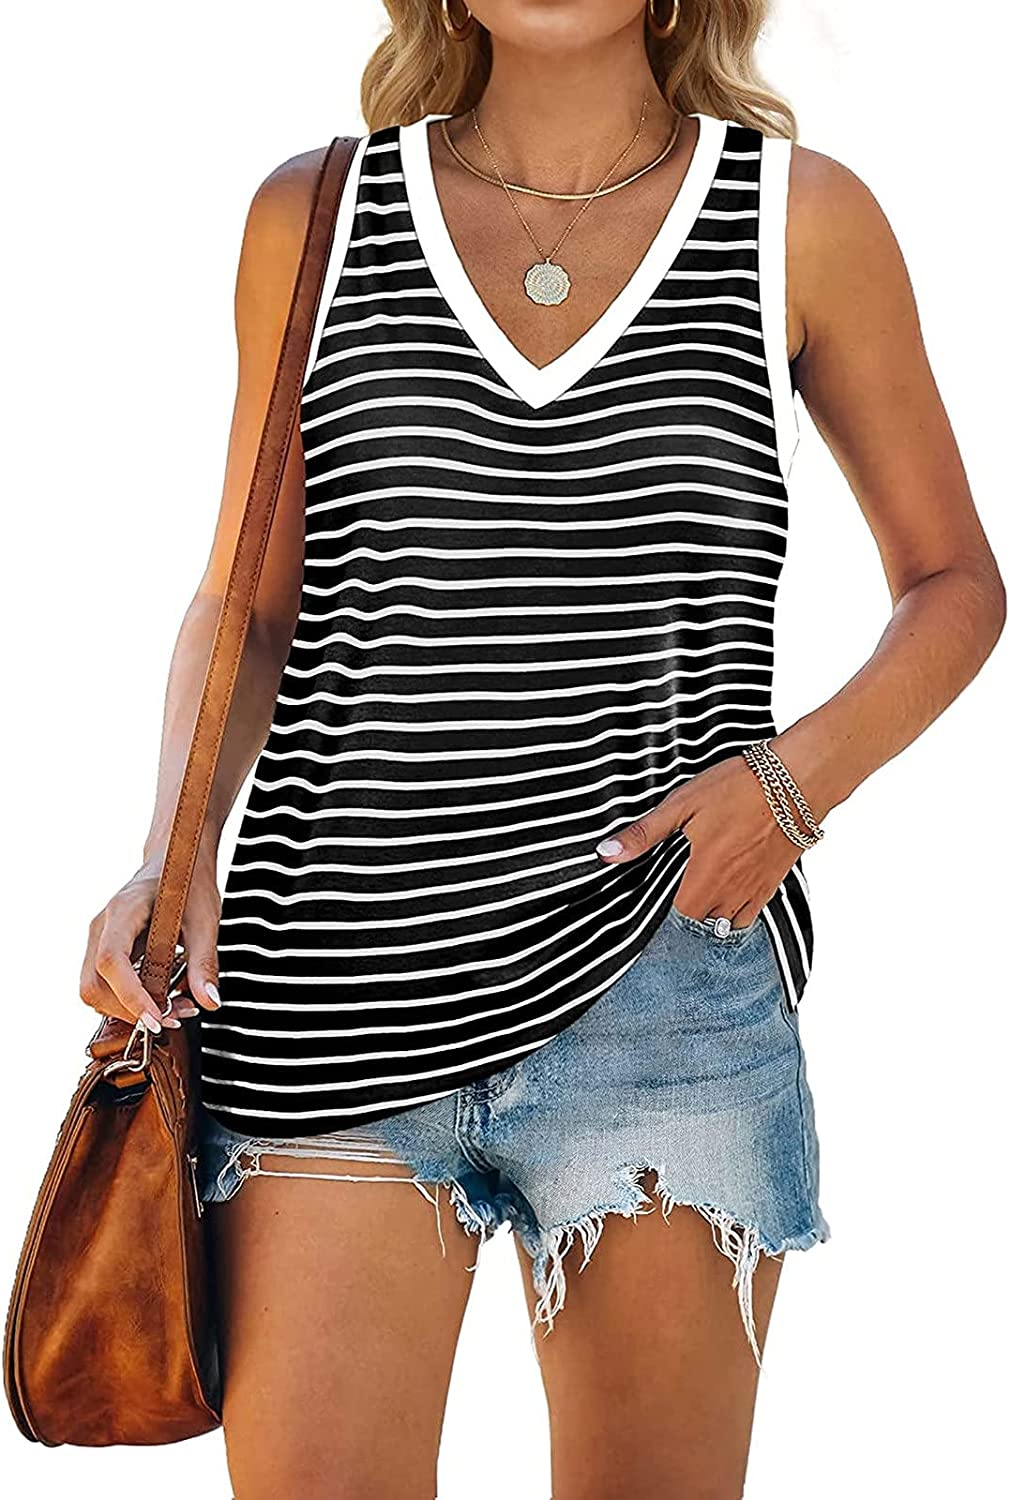 Tank Top for Women, Tank Tops Womens Stripe Loose Fiting Sling Summer Tee Shirts Sleeveless Shirts for Women Casual Summer